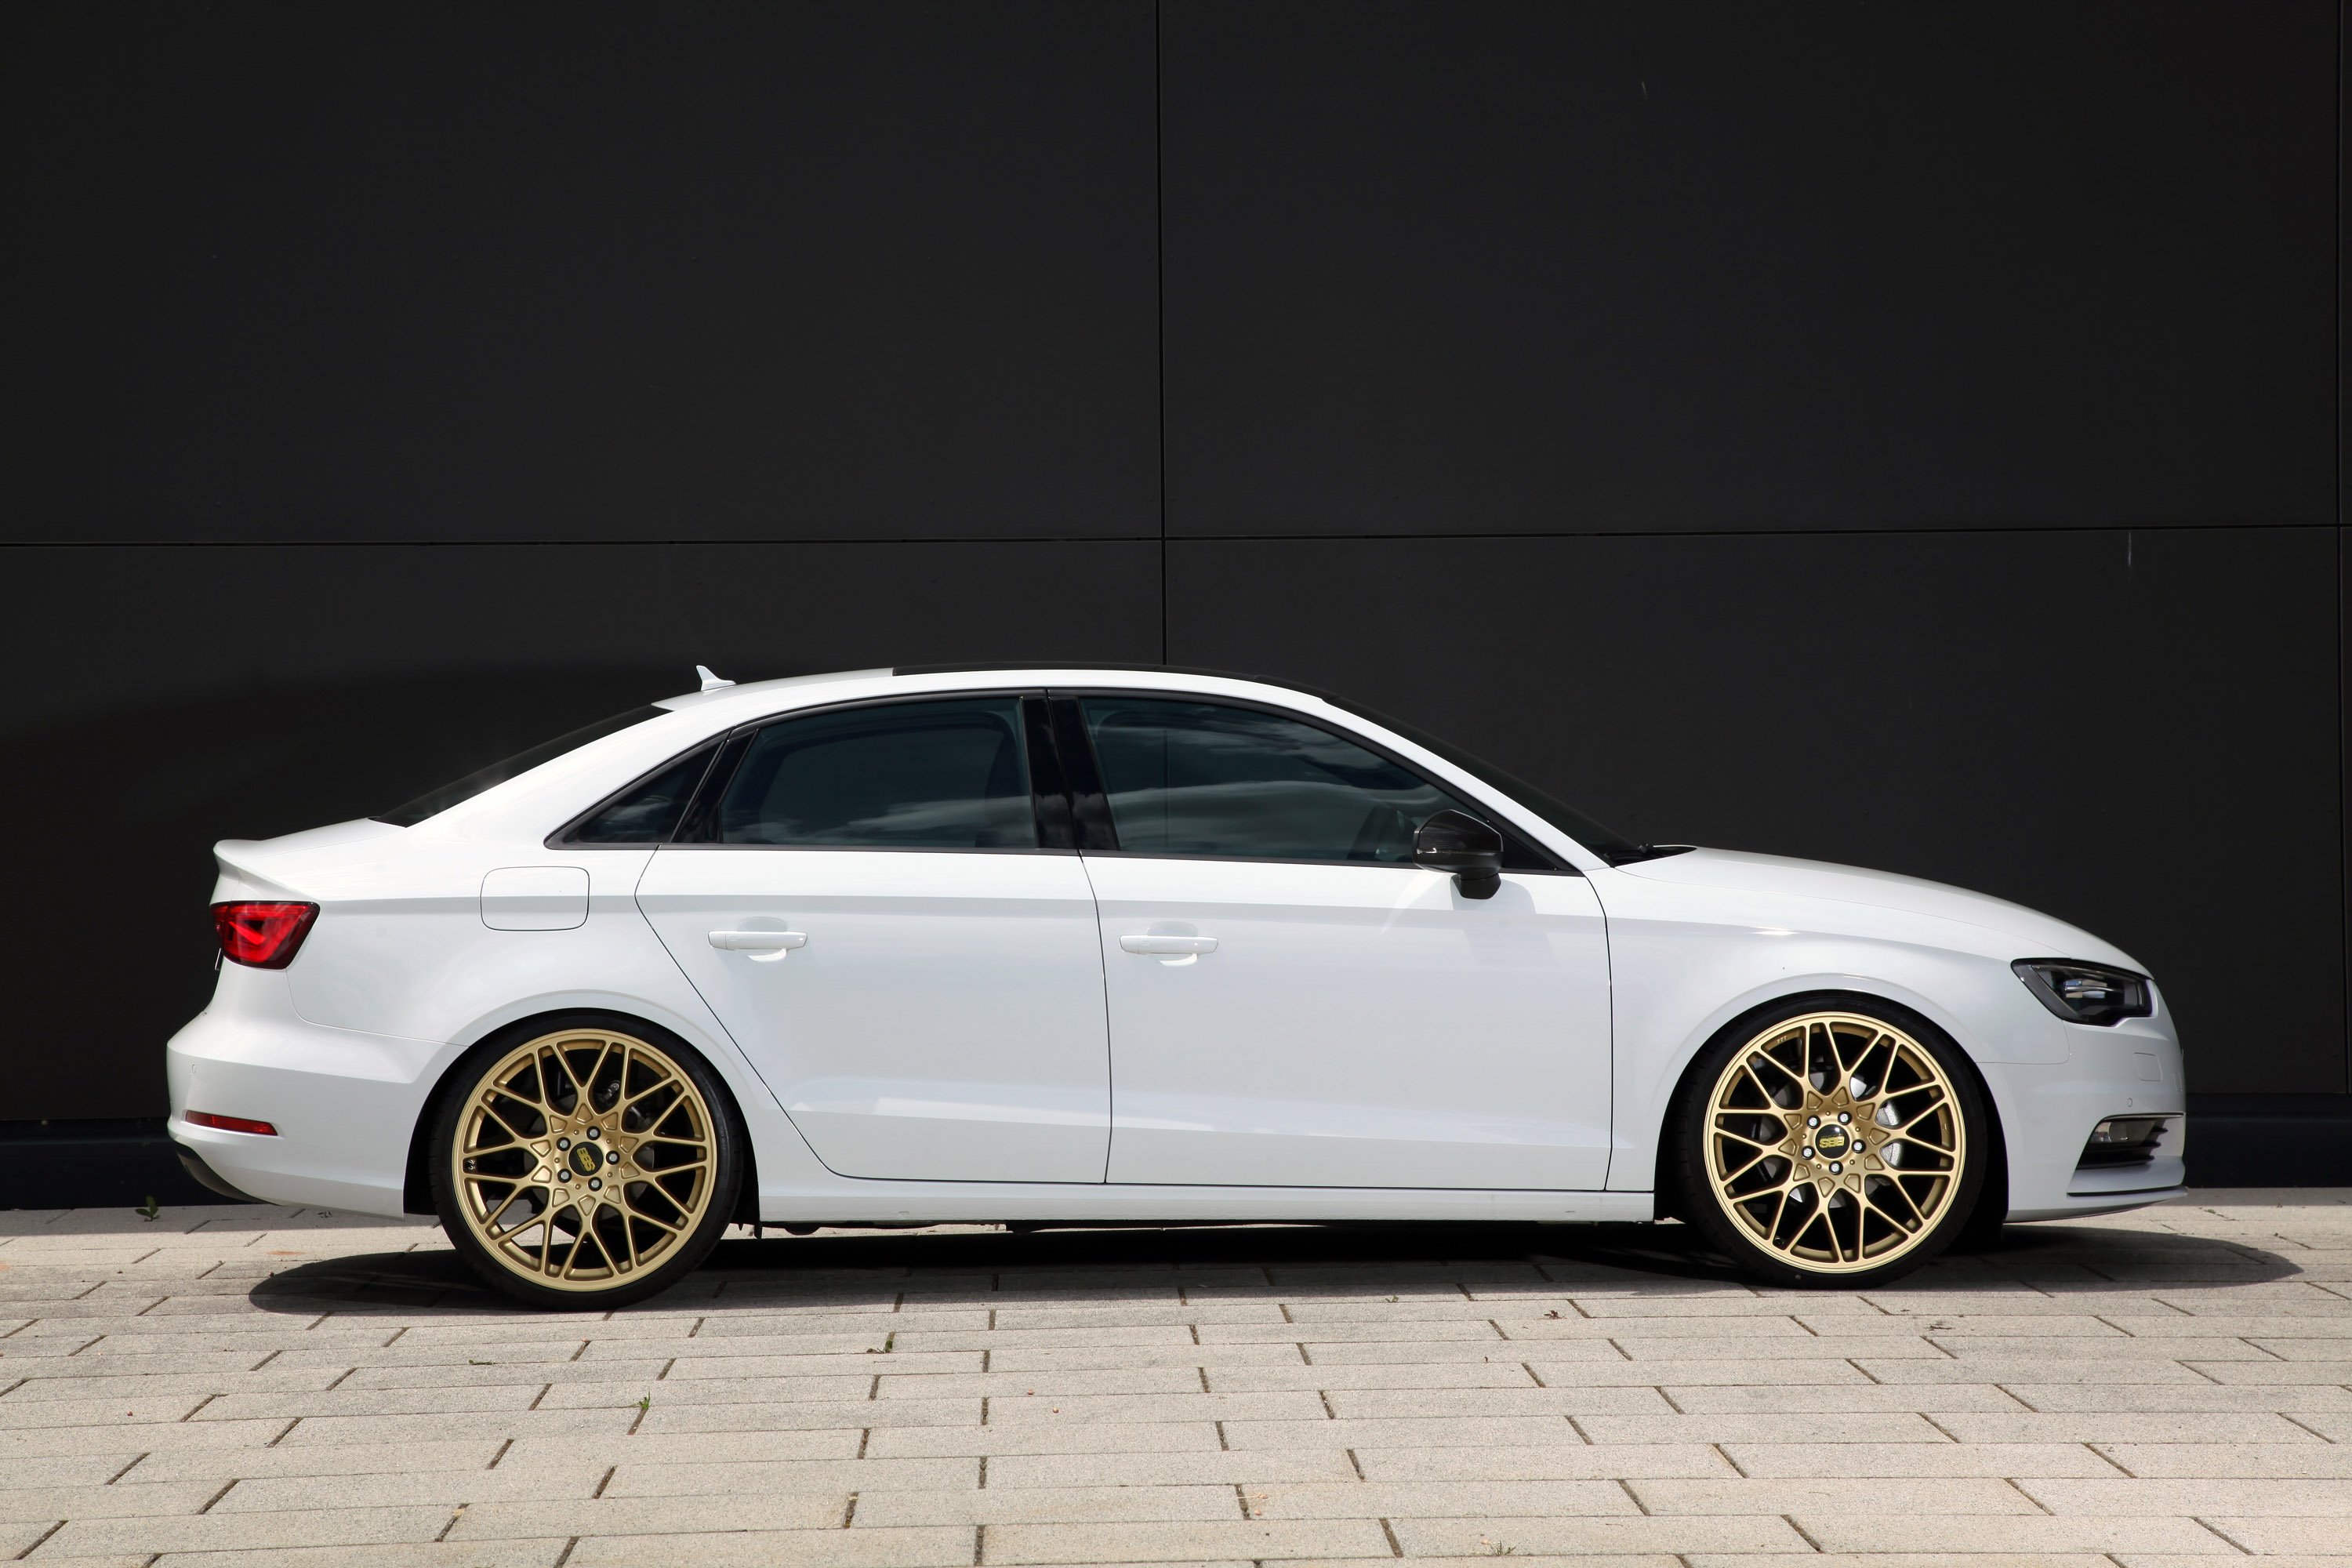 Kw Coilovers For The New Audi A3 Notchback Sedan Video